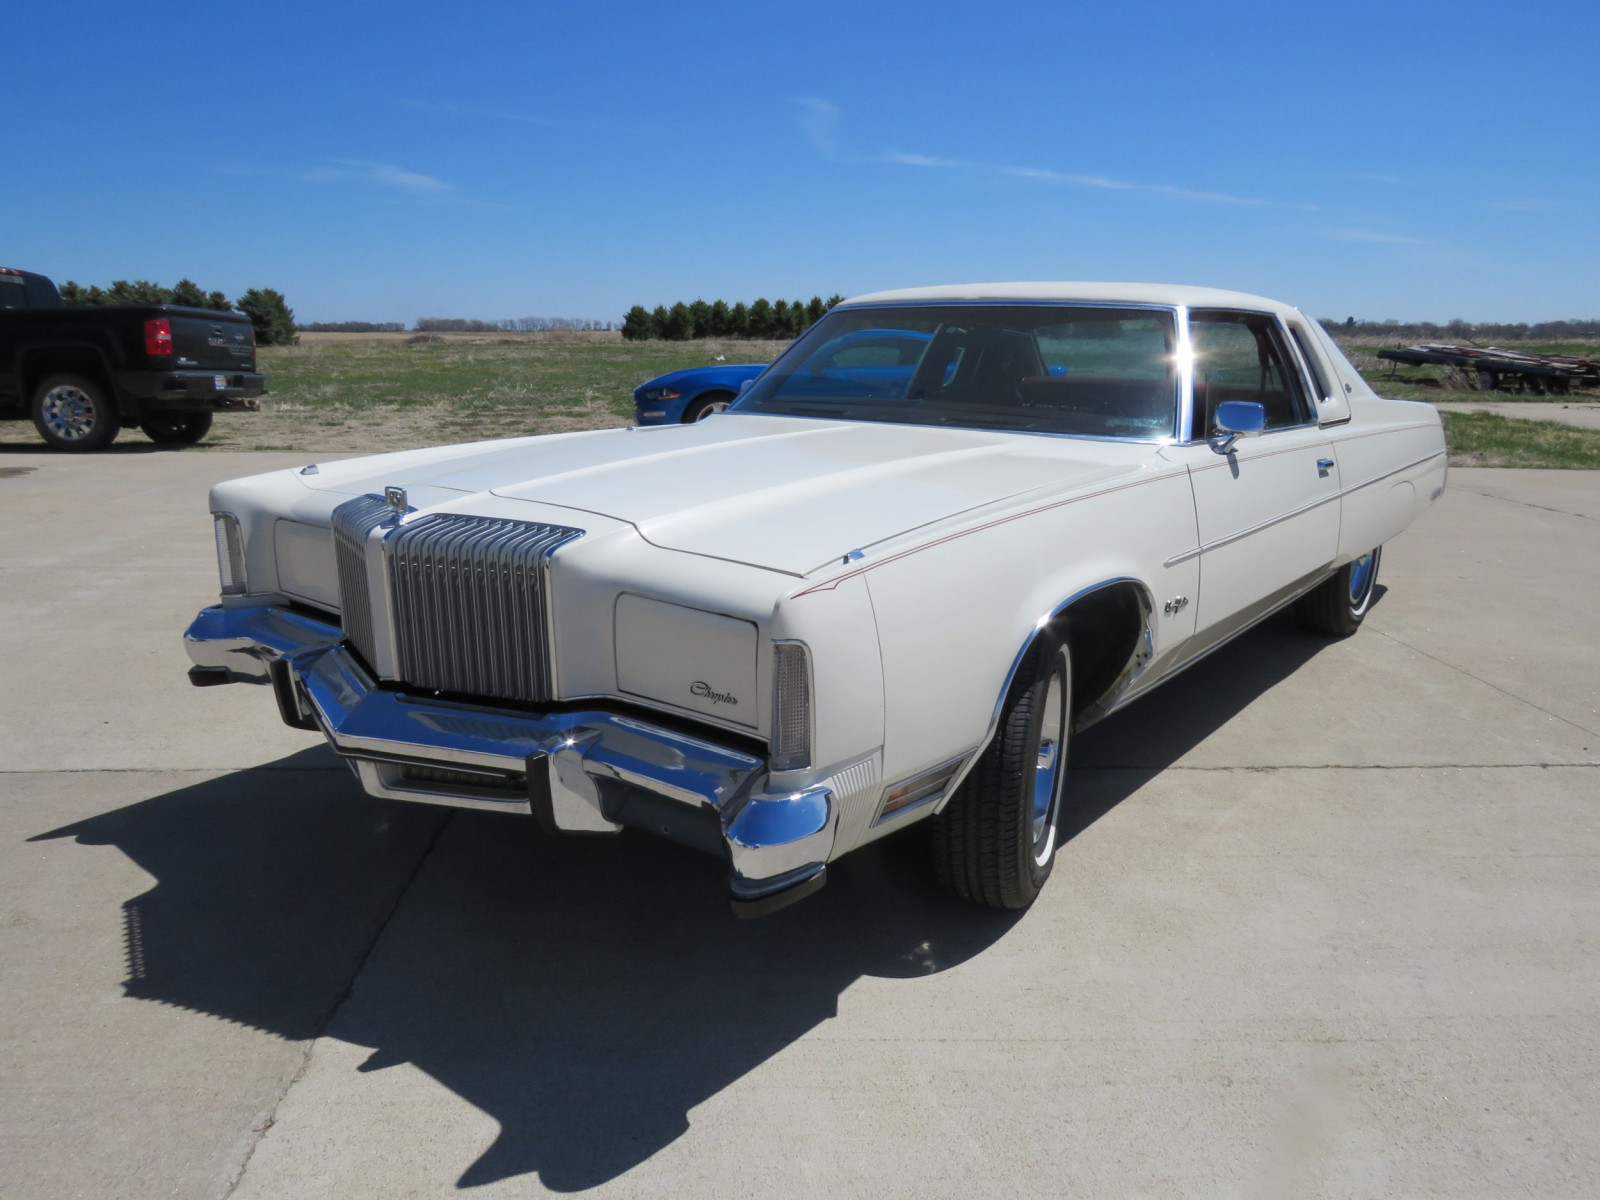 1977 Chrysler New Yorker Brougham 2dr Landau Coupe with ST. Regis - Image 3